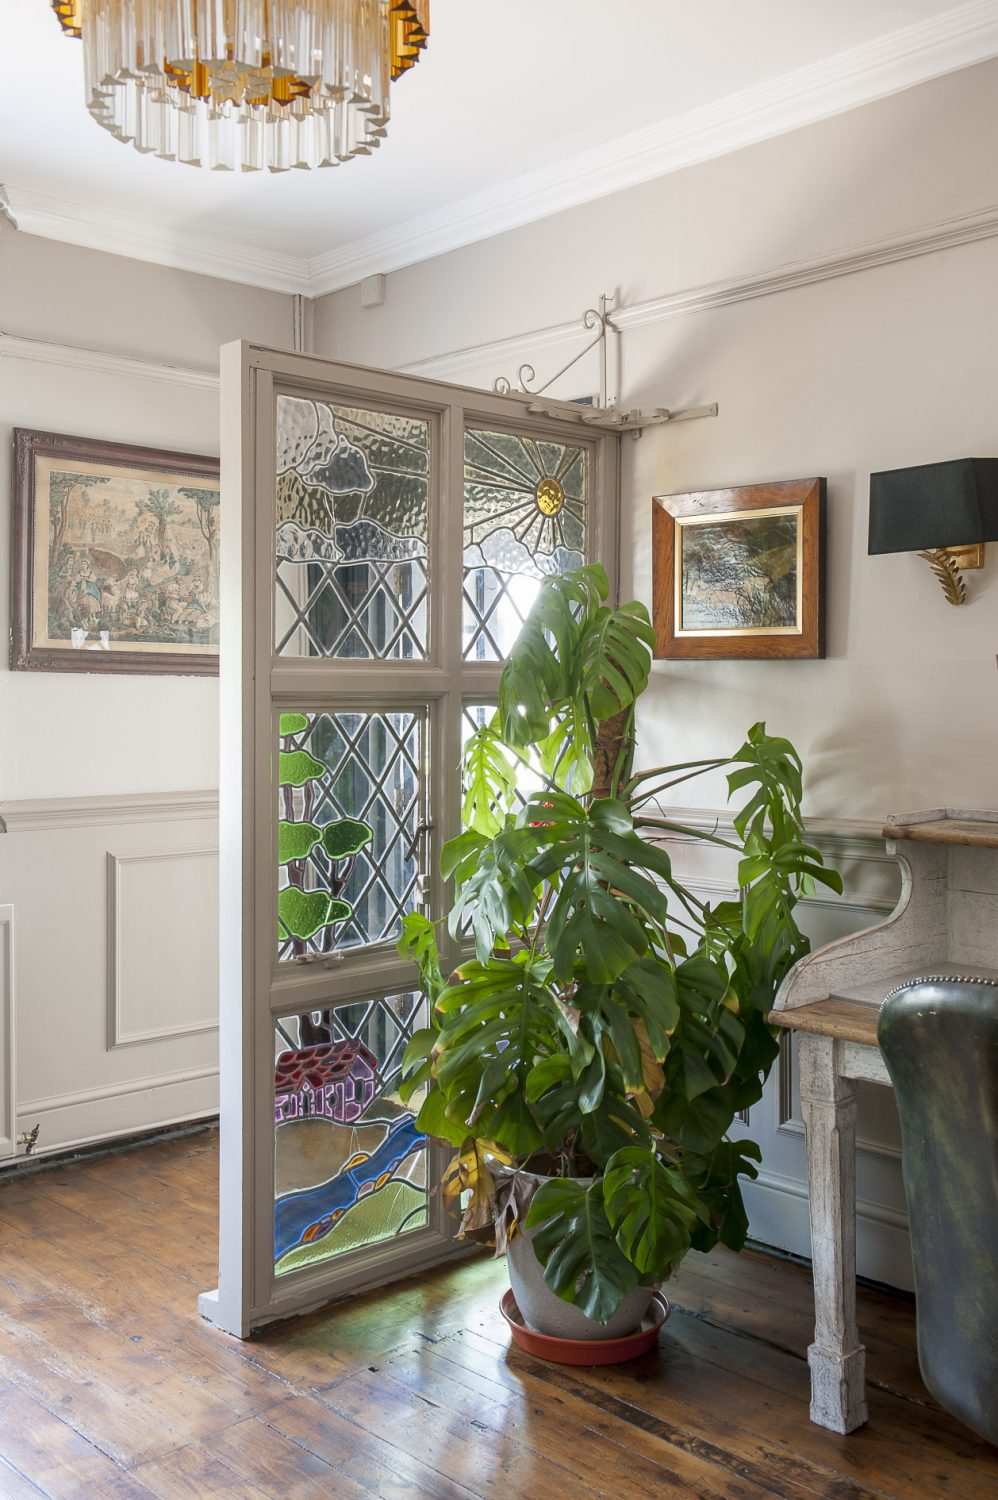 A decorative glass panel disguises the door to the downstairs loo and utility room